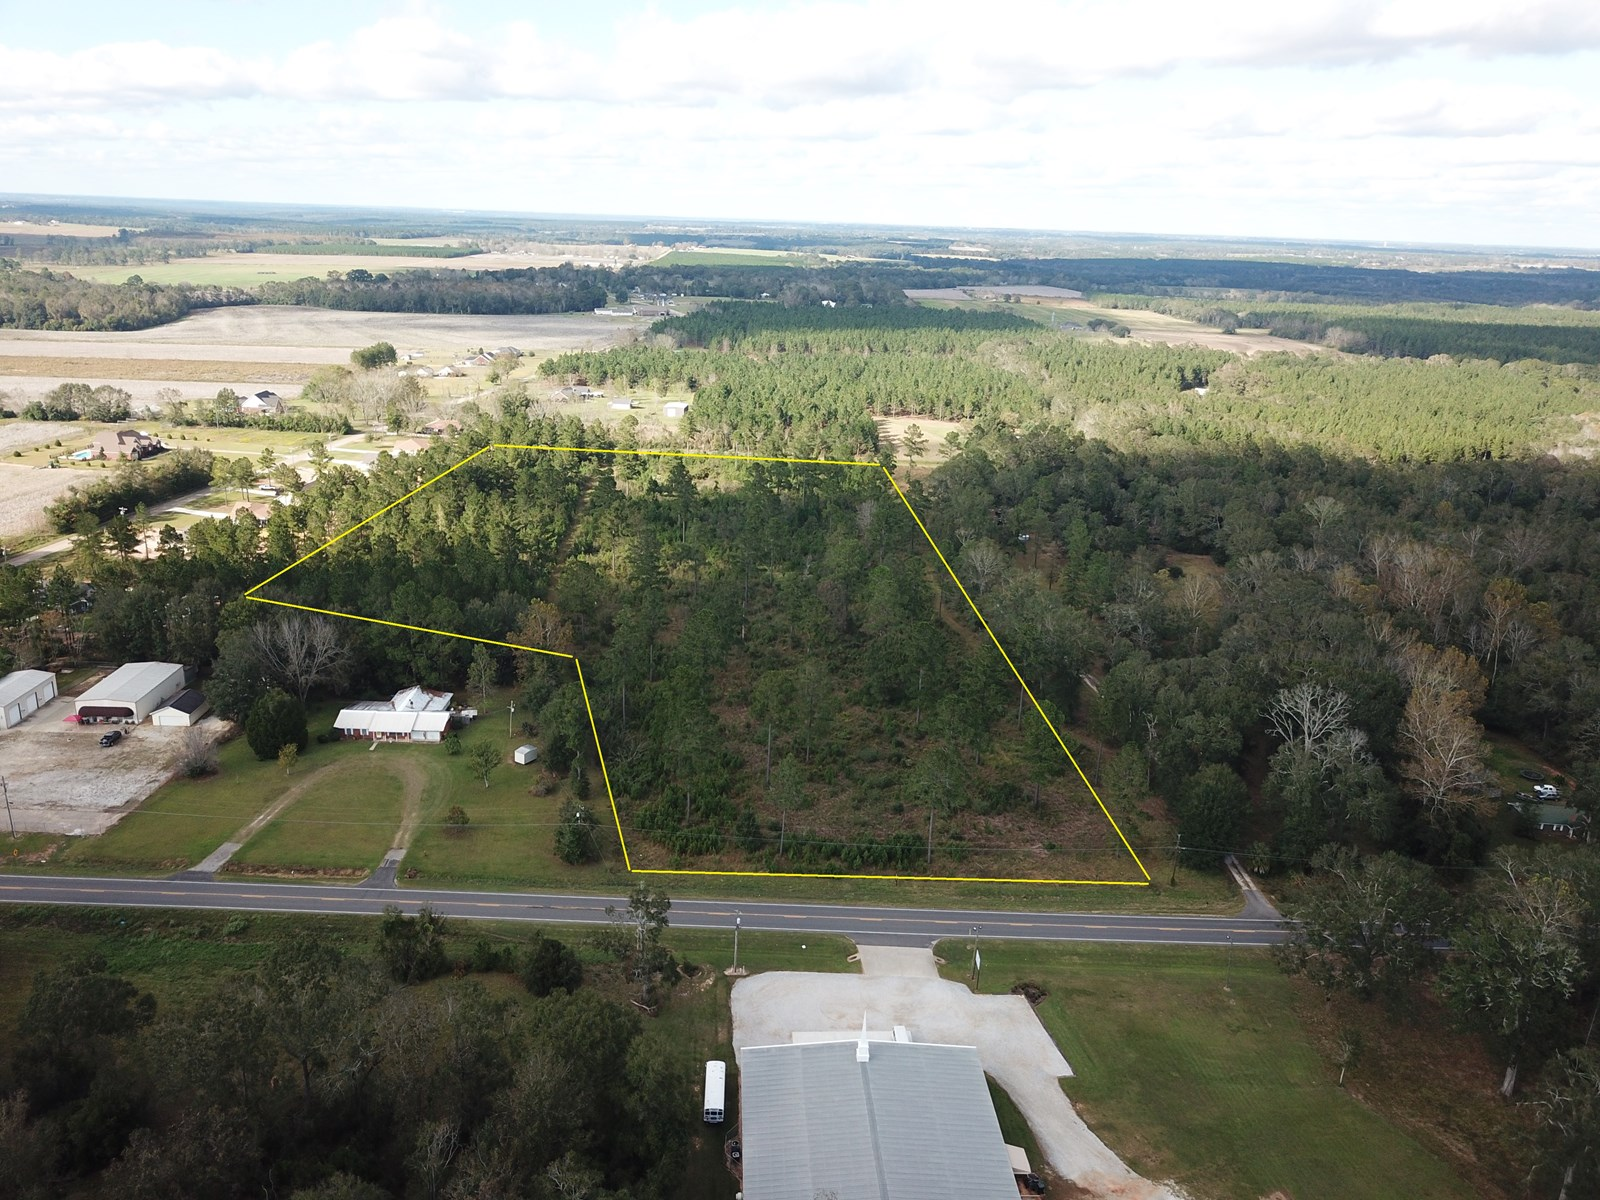 14 ACRES FOR SALE ON HIGHWAY 52, HARTFORD, ALABAMA